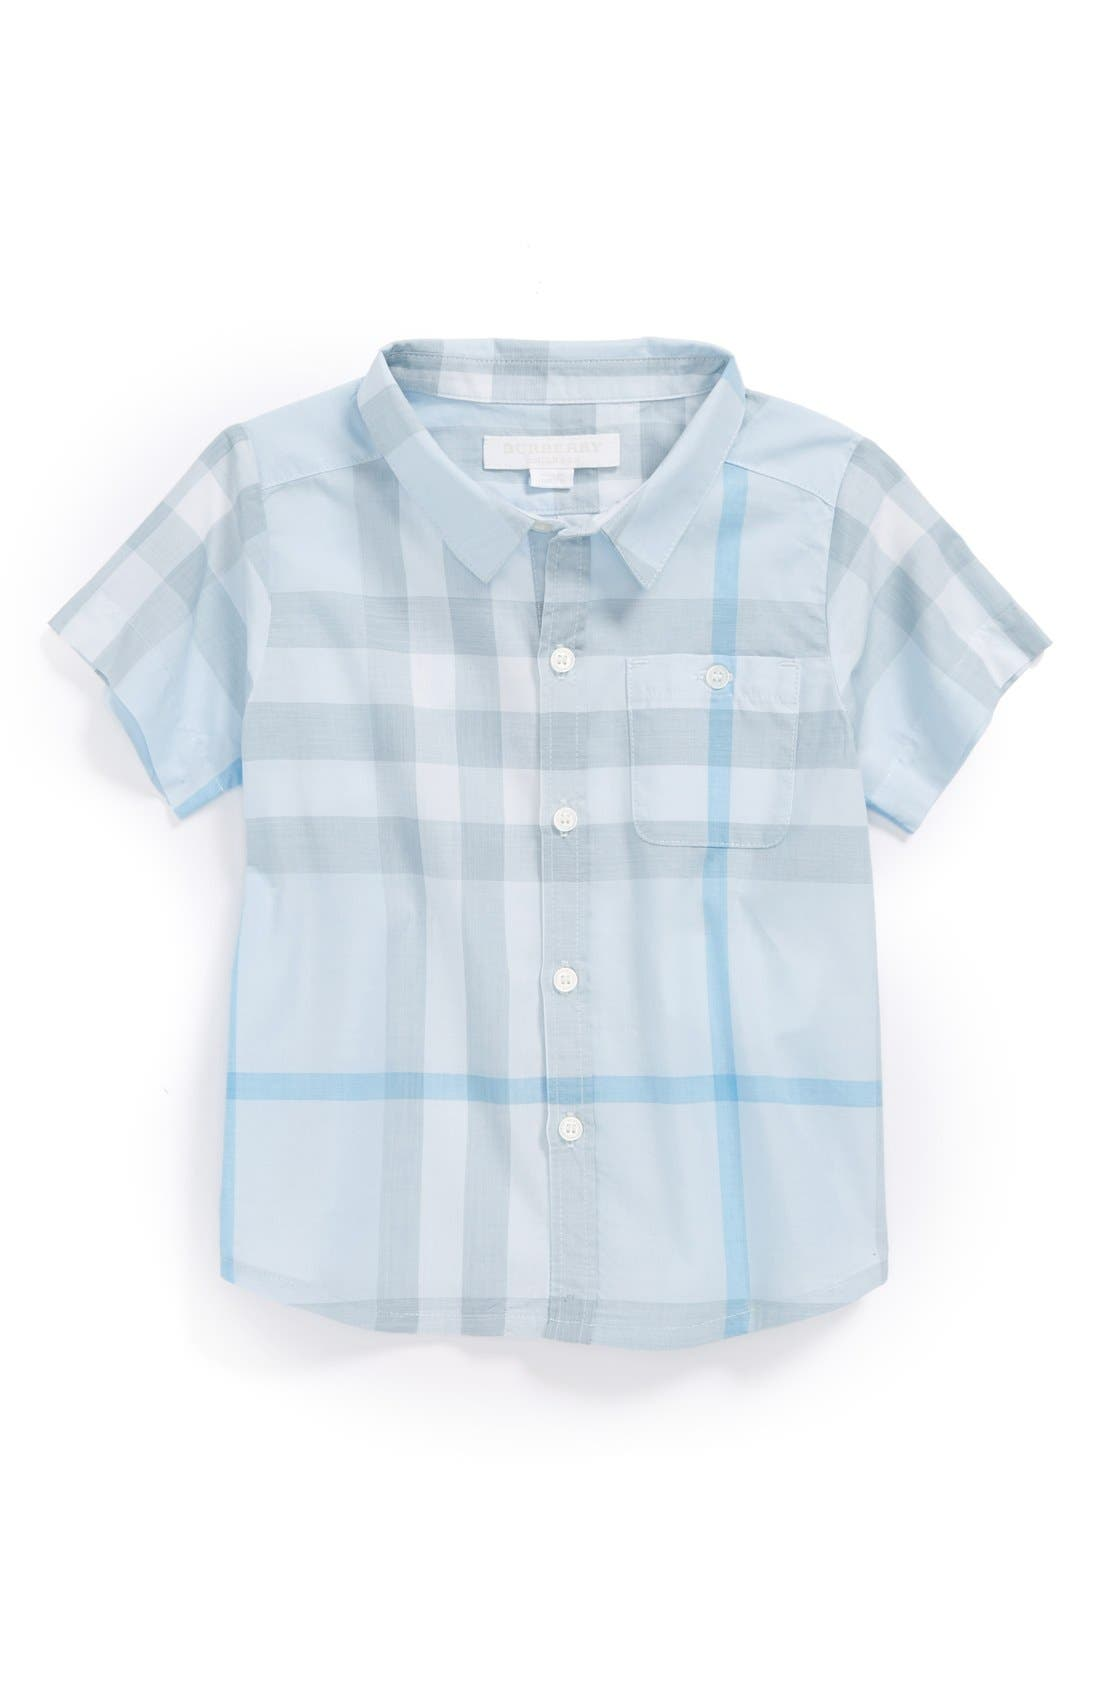 Main Image - Burberry 'Tyson' Check Pattern Woven Shirt (Baby Boys)